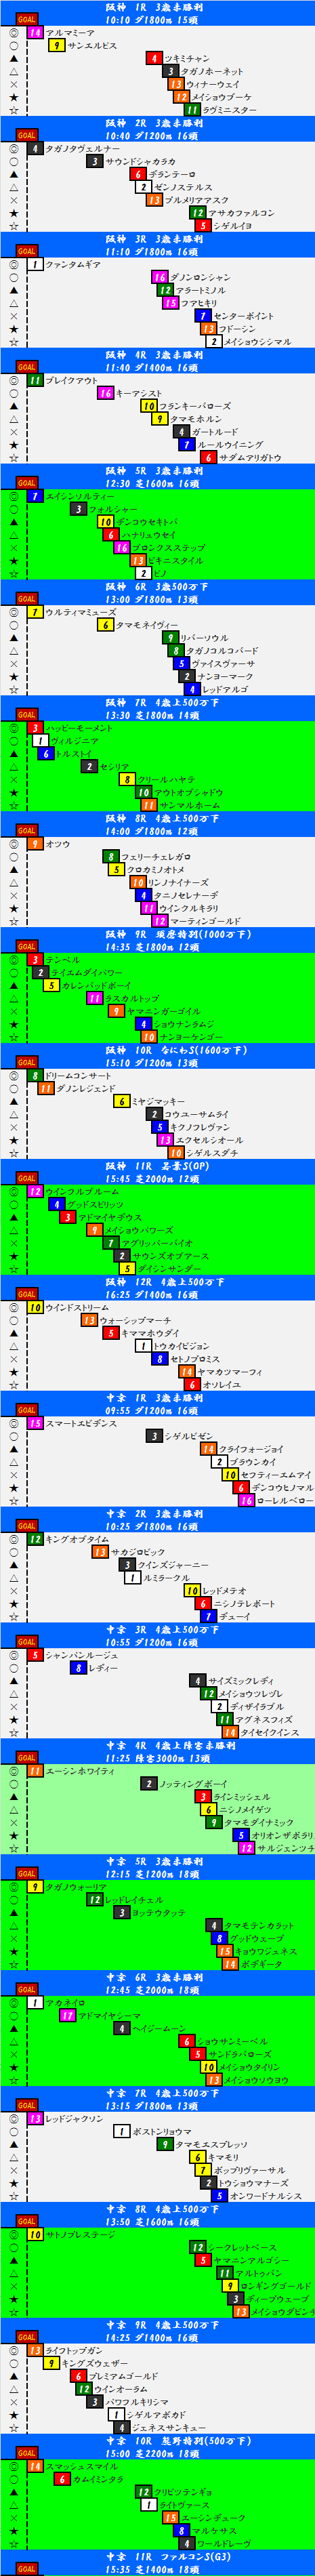 201403221.png